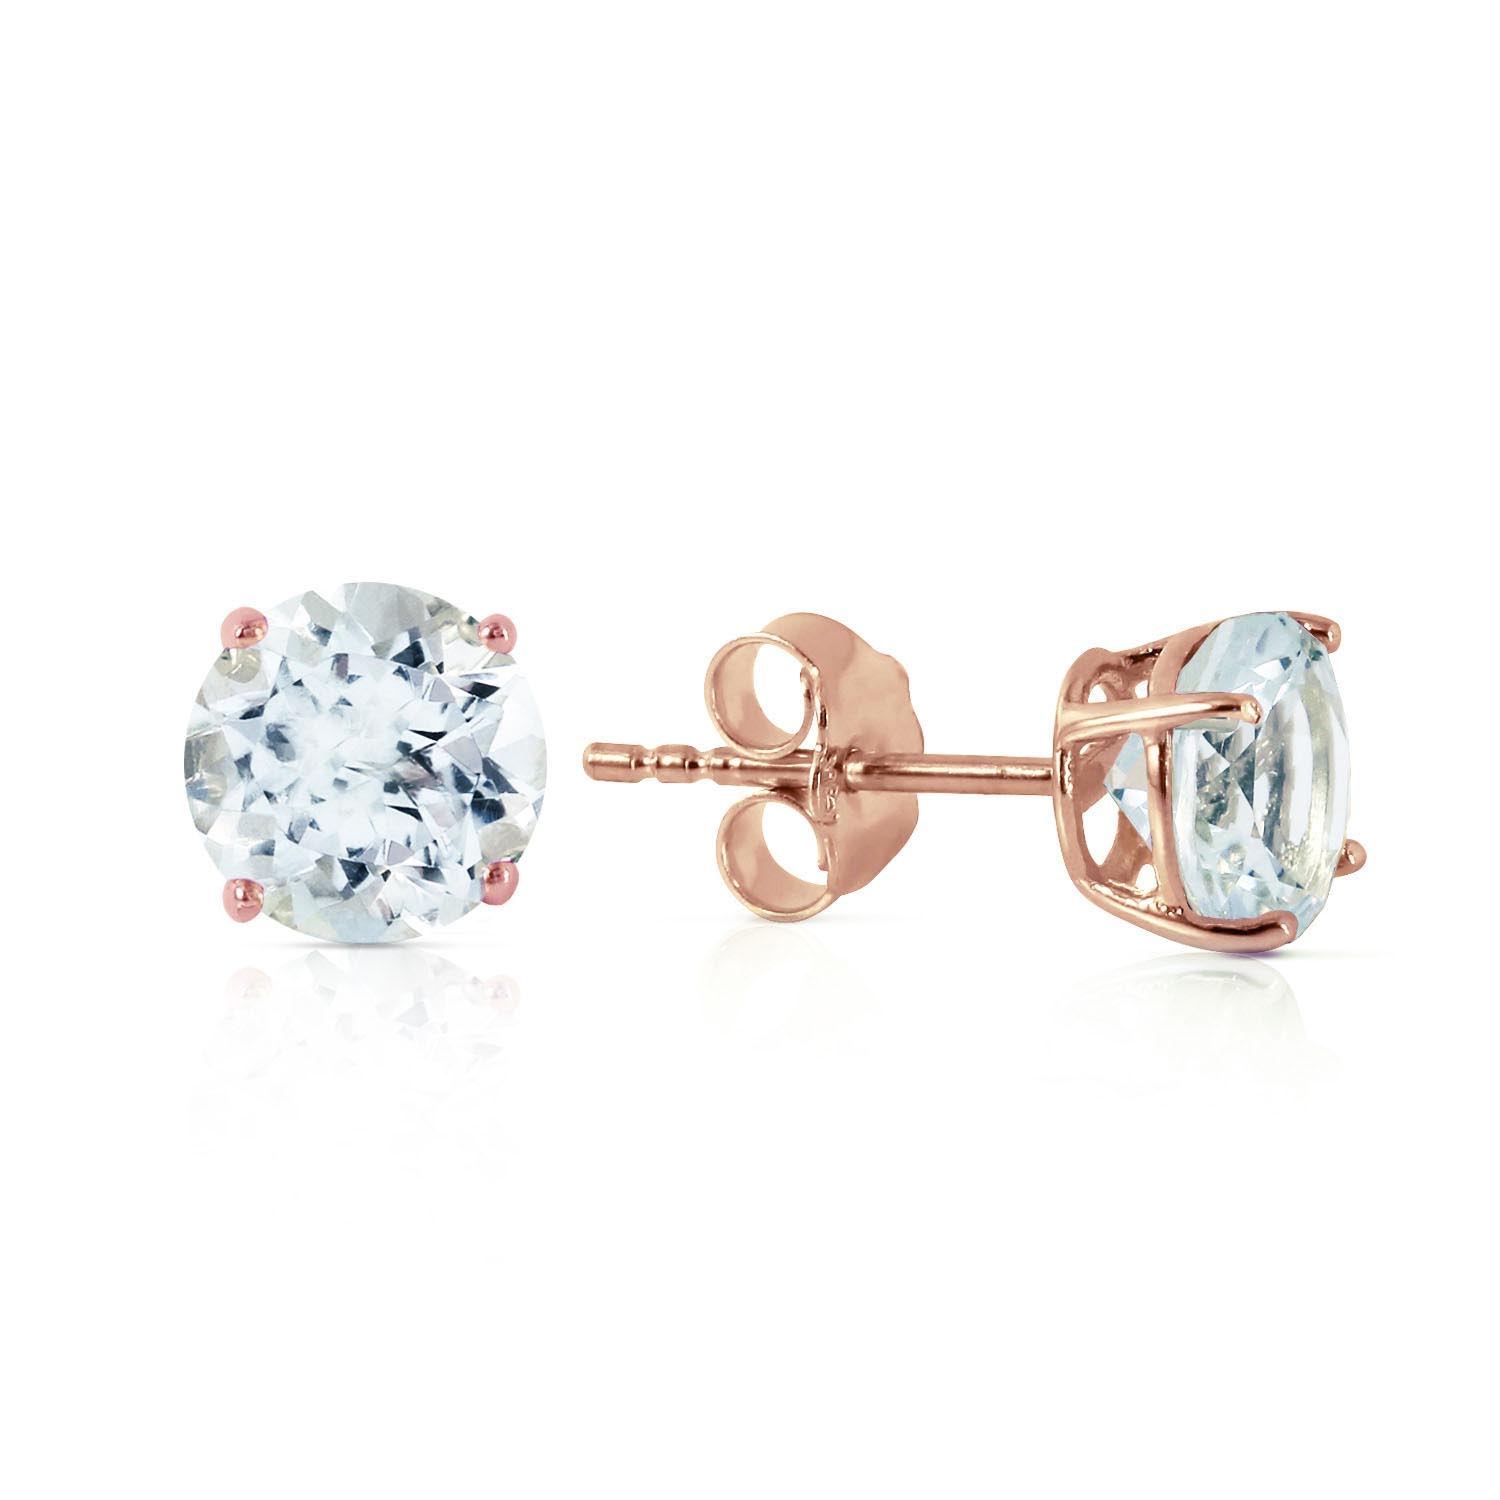 Aquamarine Stud Earrings 0.95ctw in 9ct Rose Gold